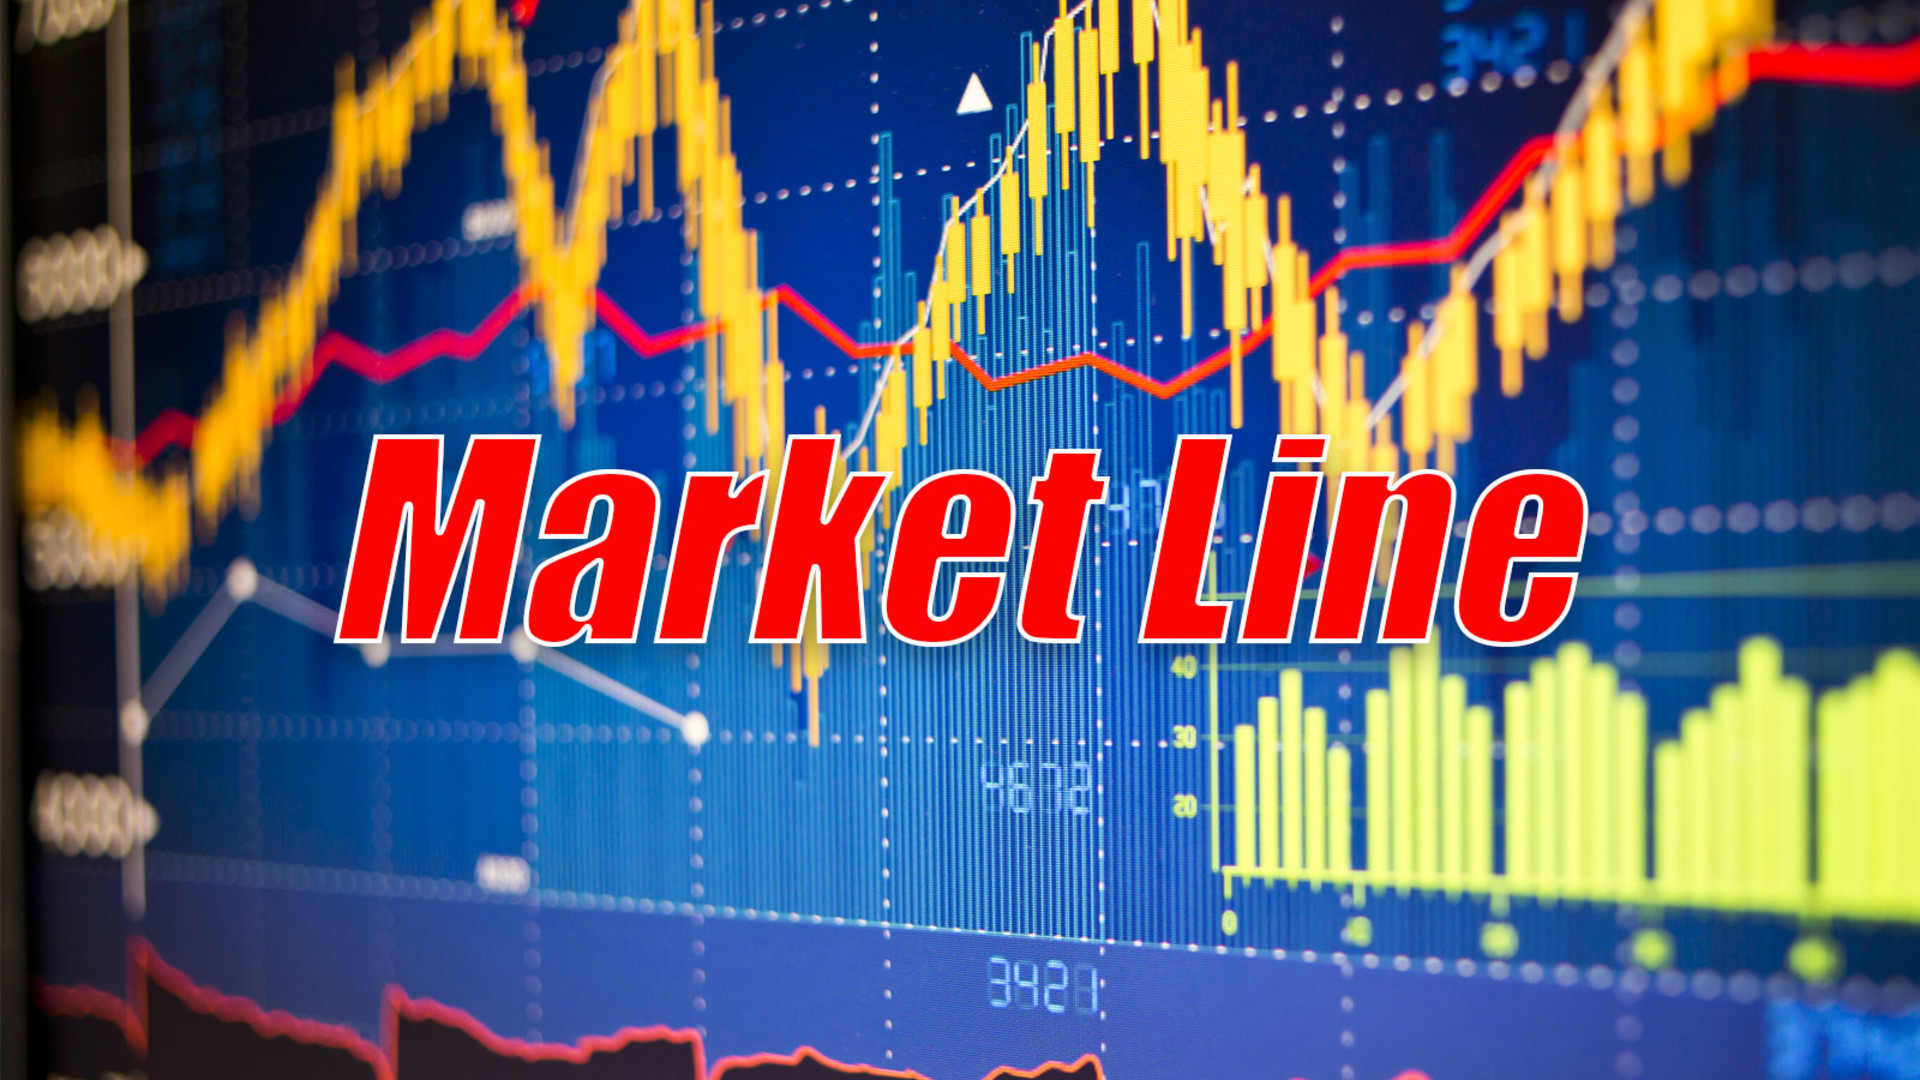 Marketline Report for Monday, September 16th